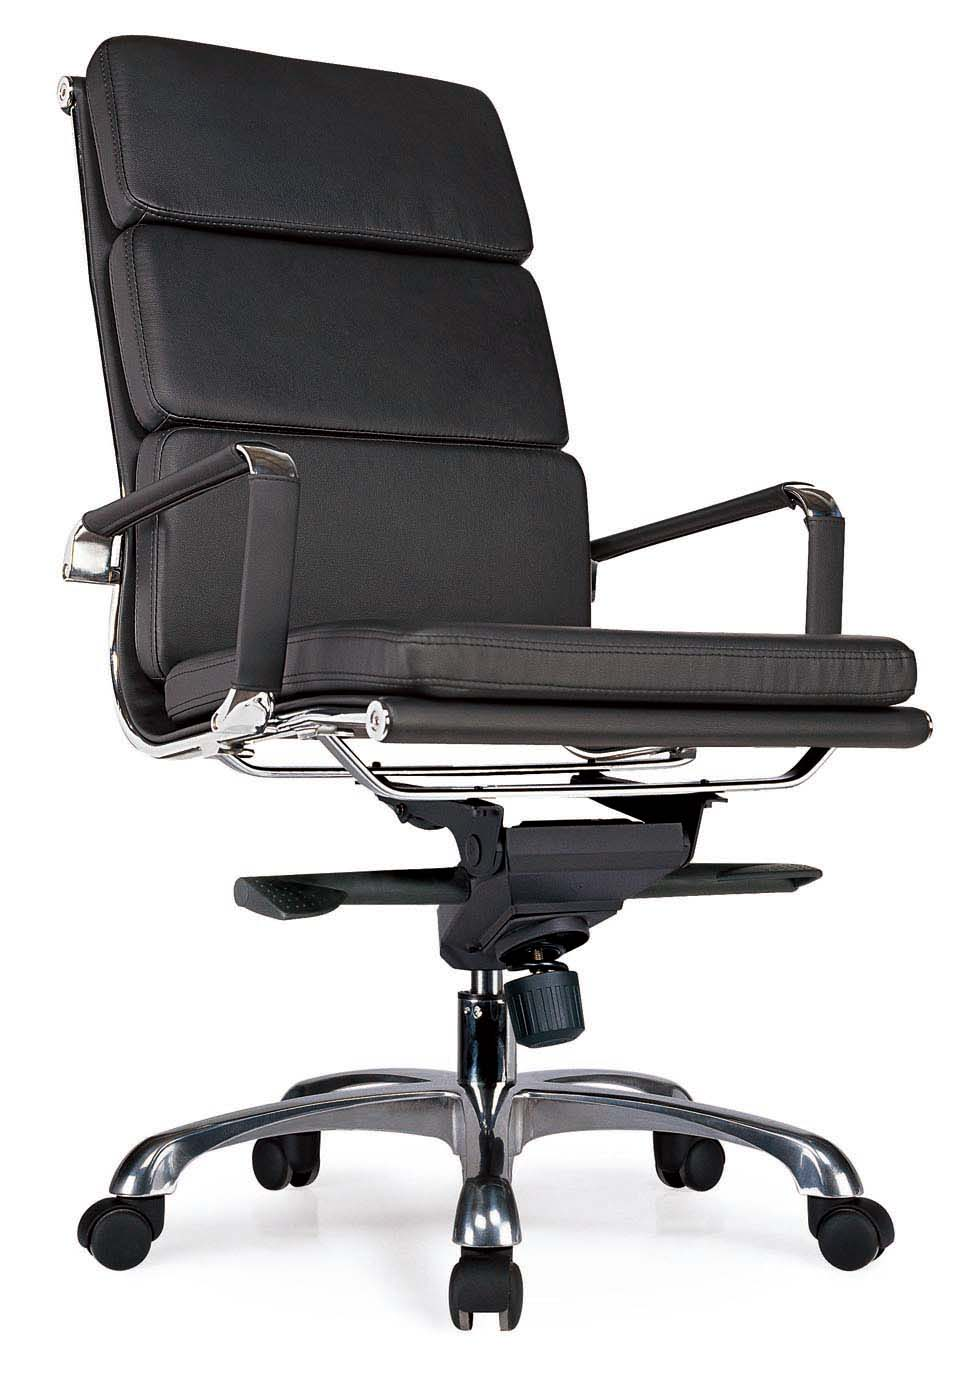 office chair8